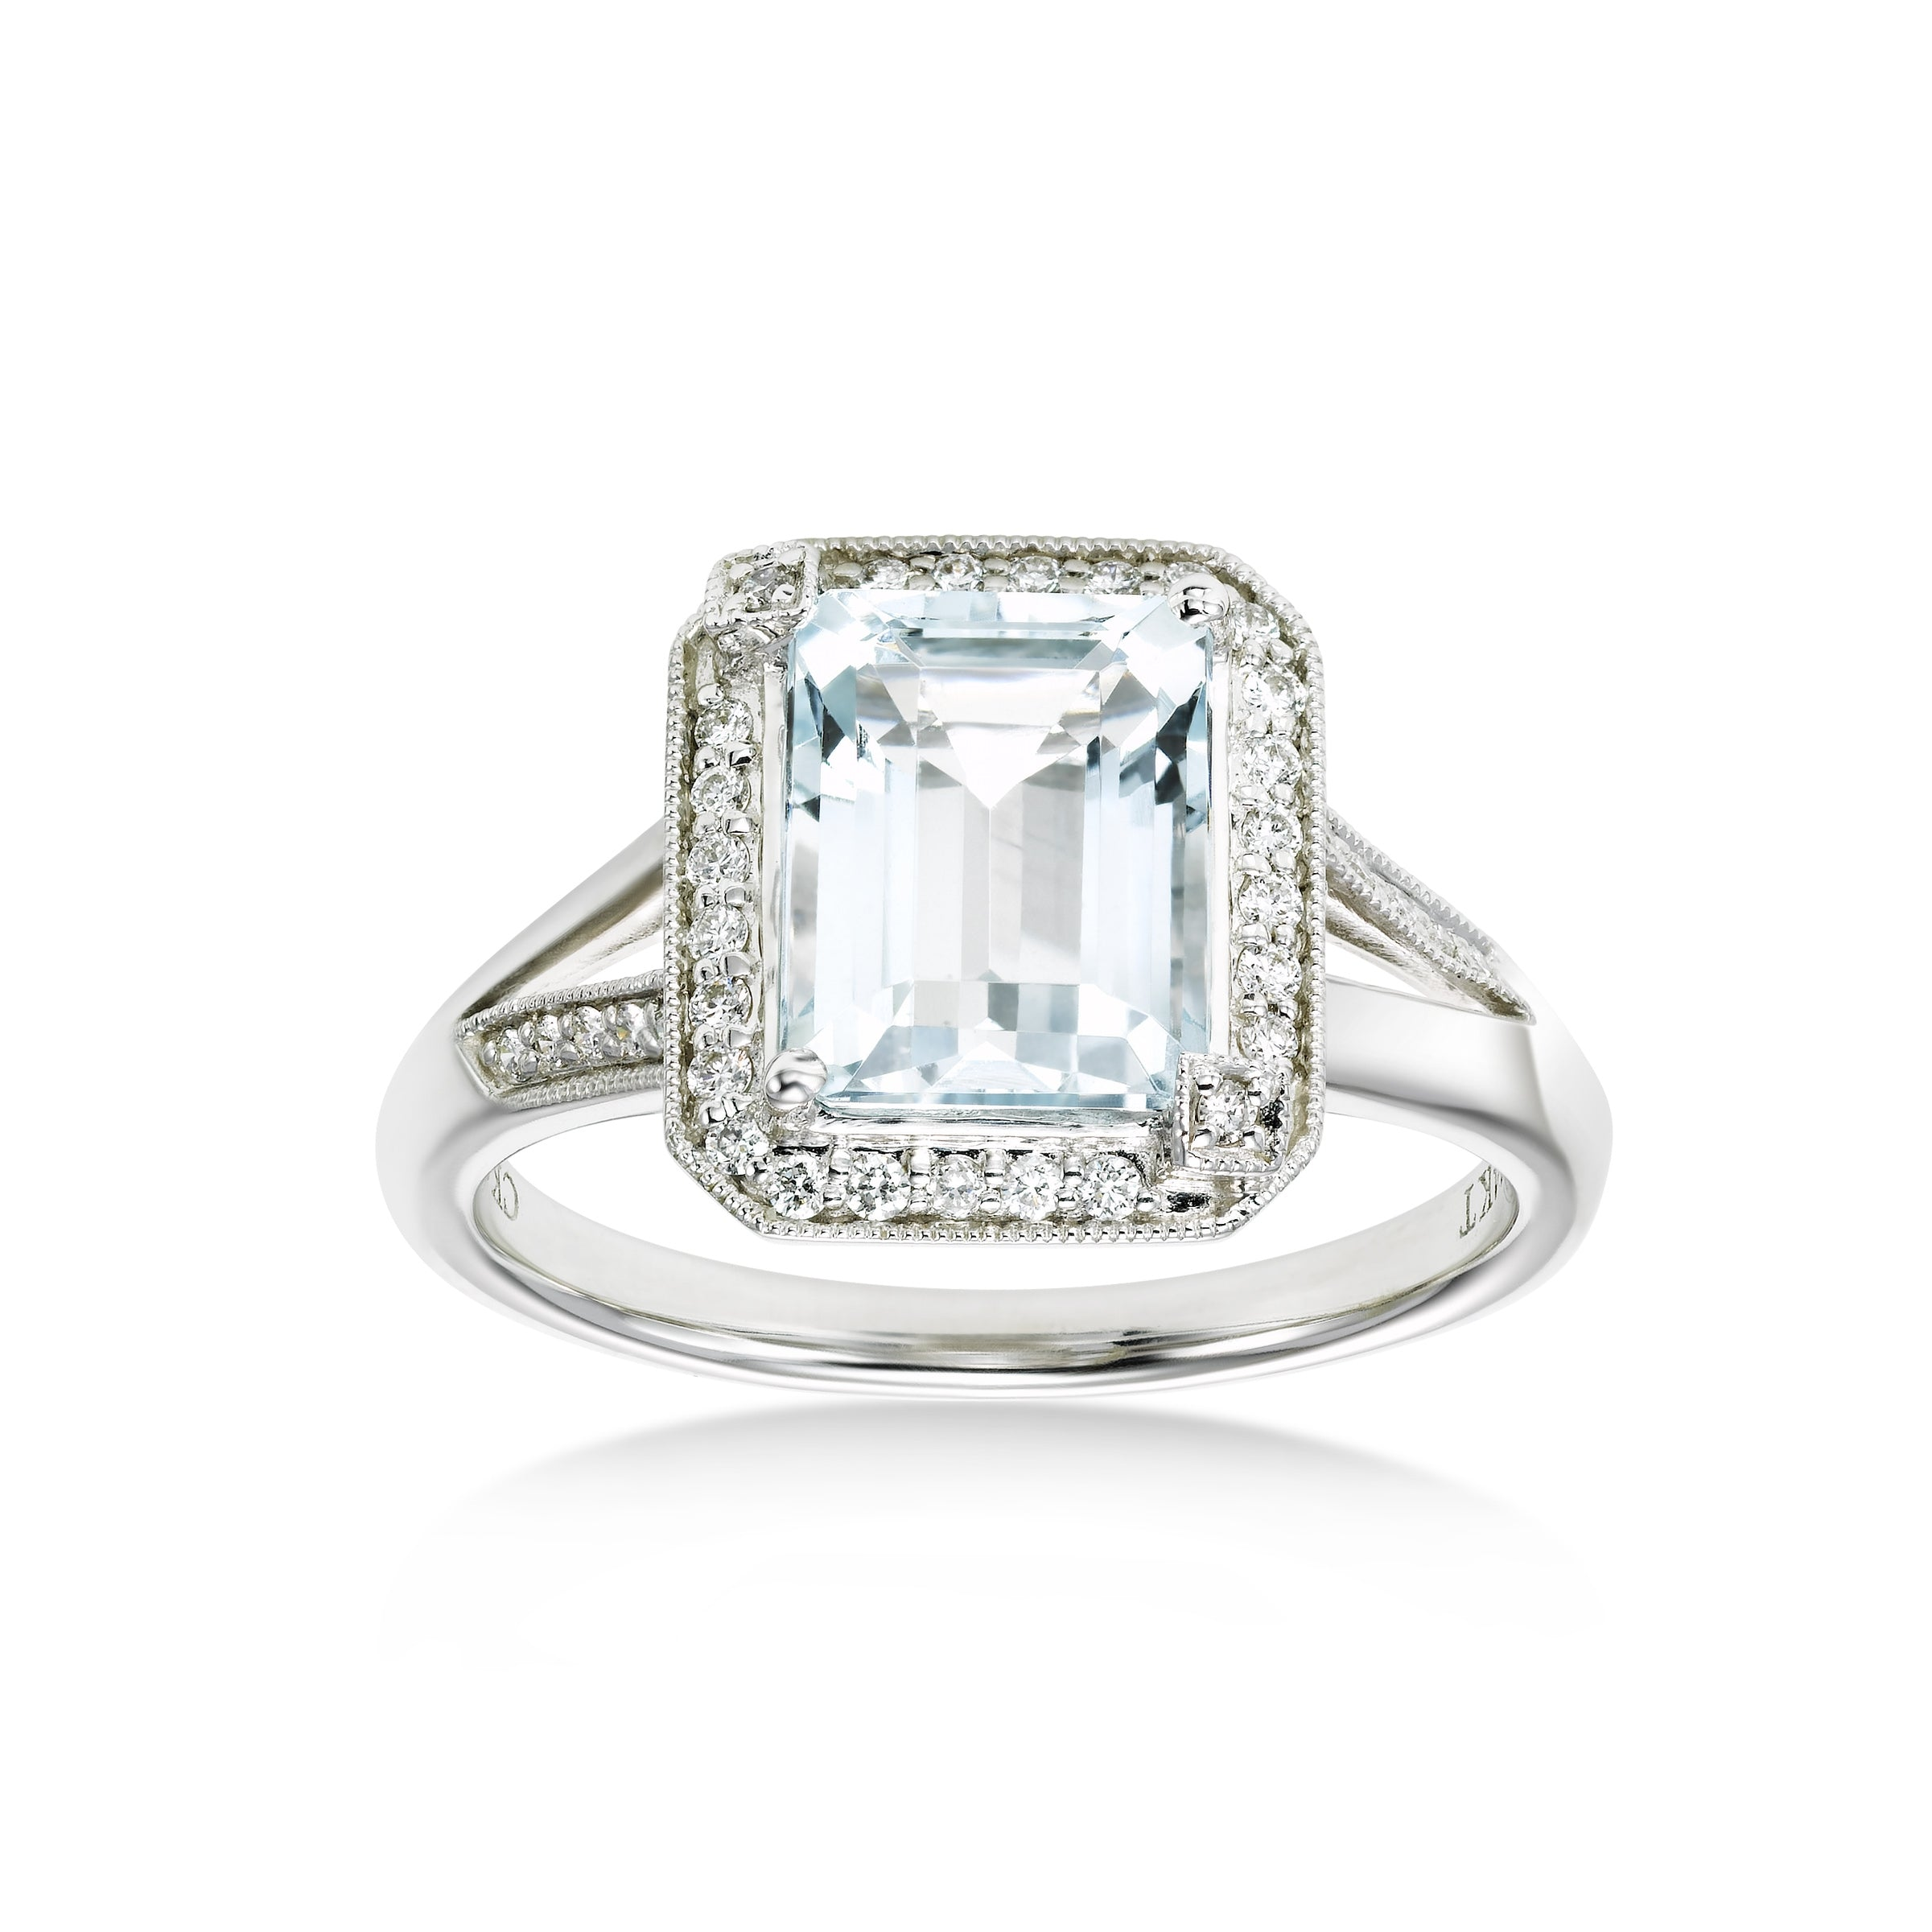 Emerald Cut Aquamarine and Diamond Ring, 14K White Gold